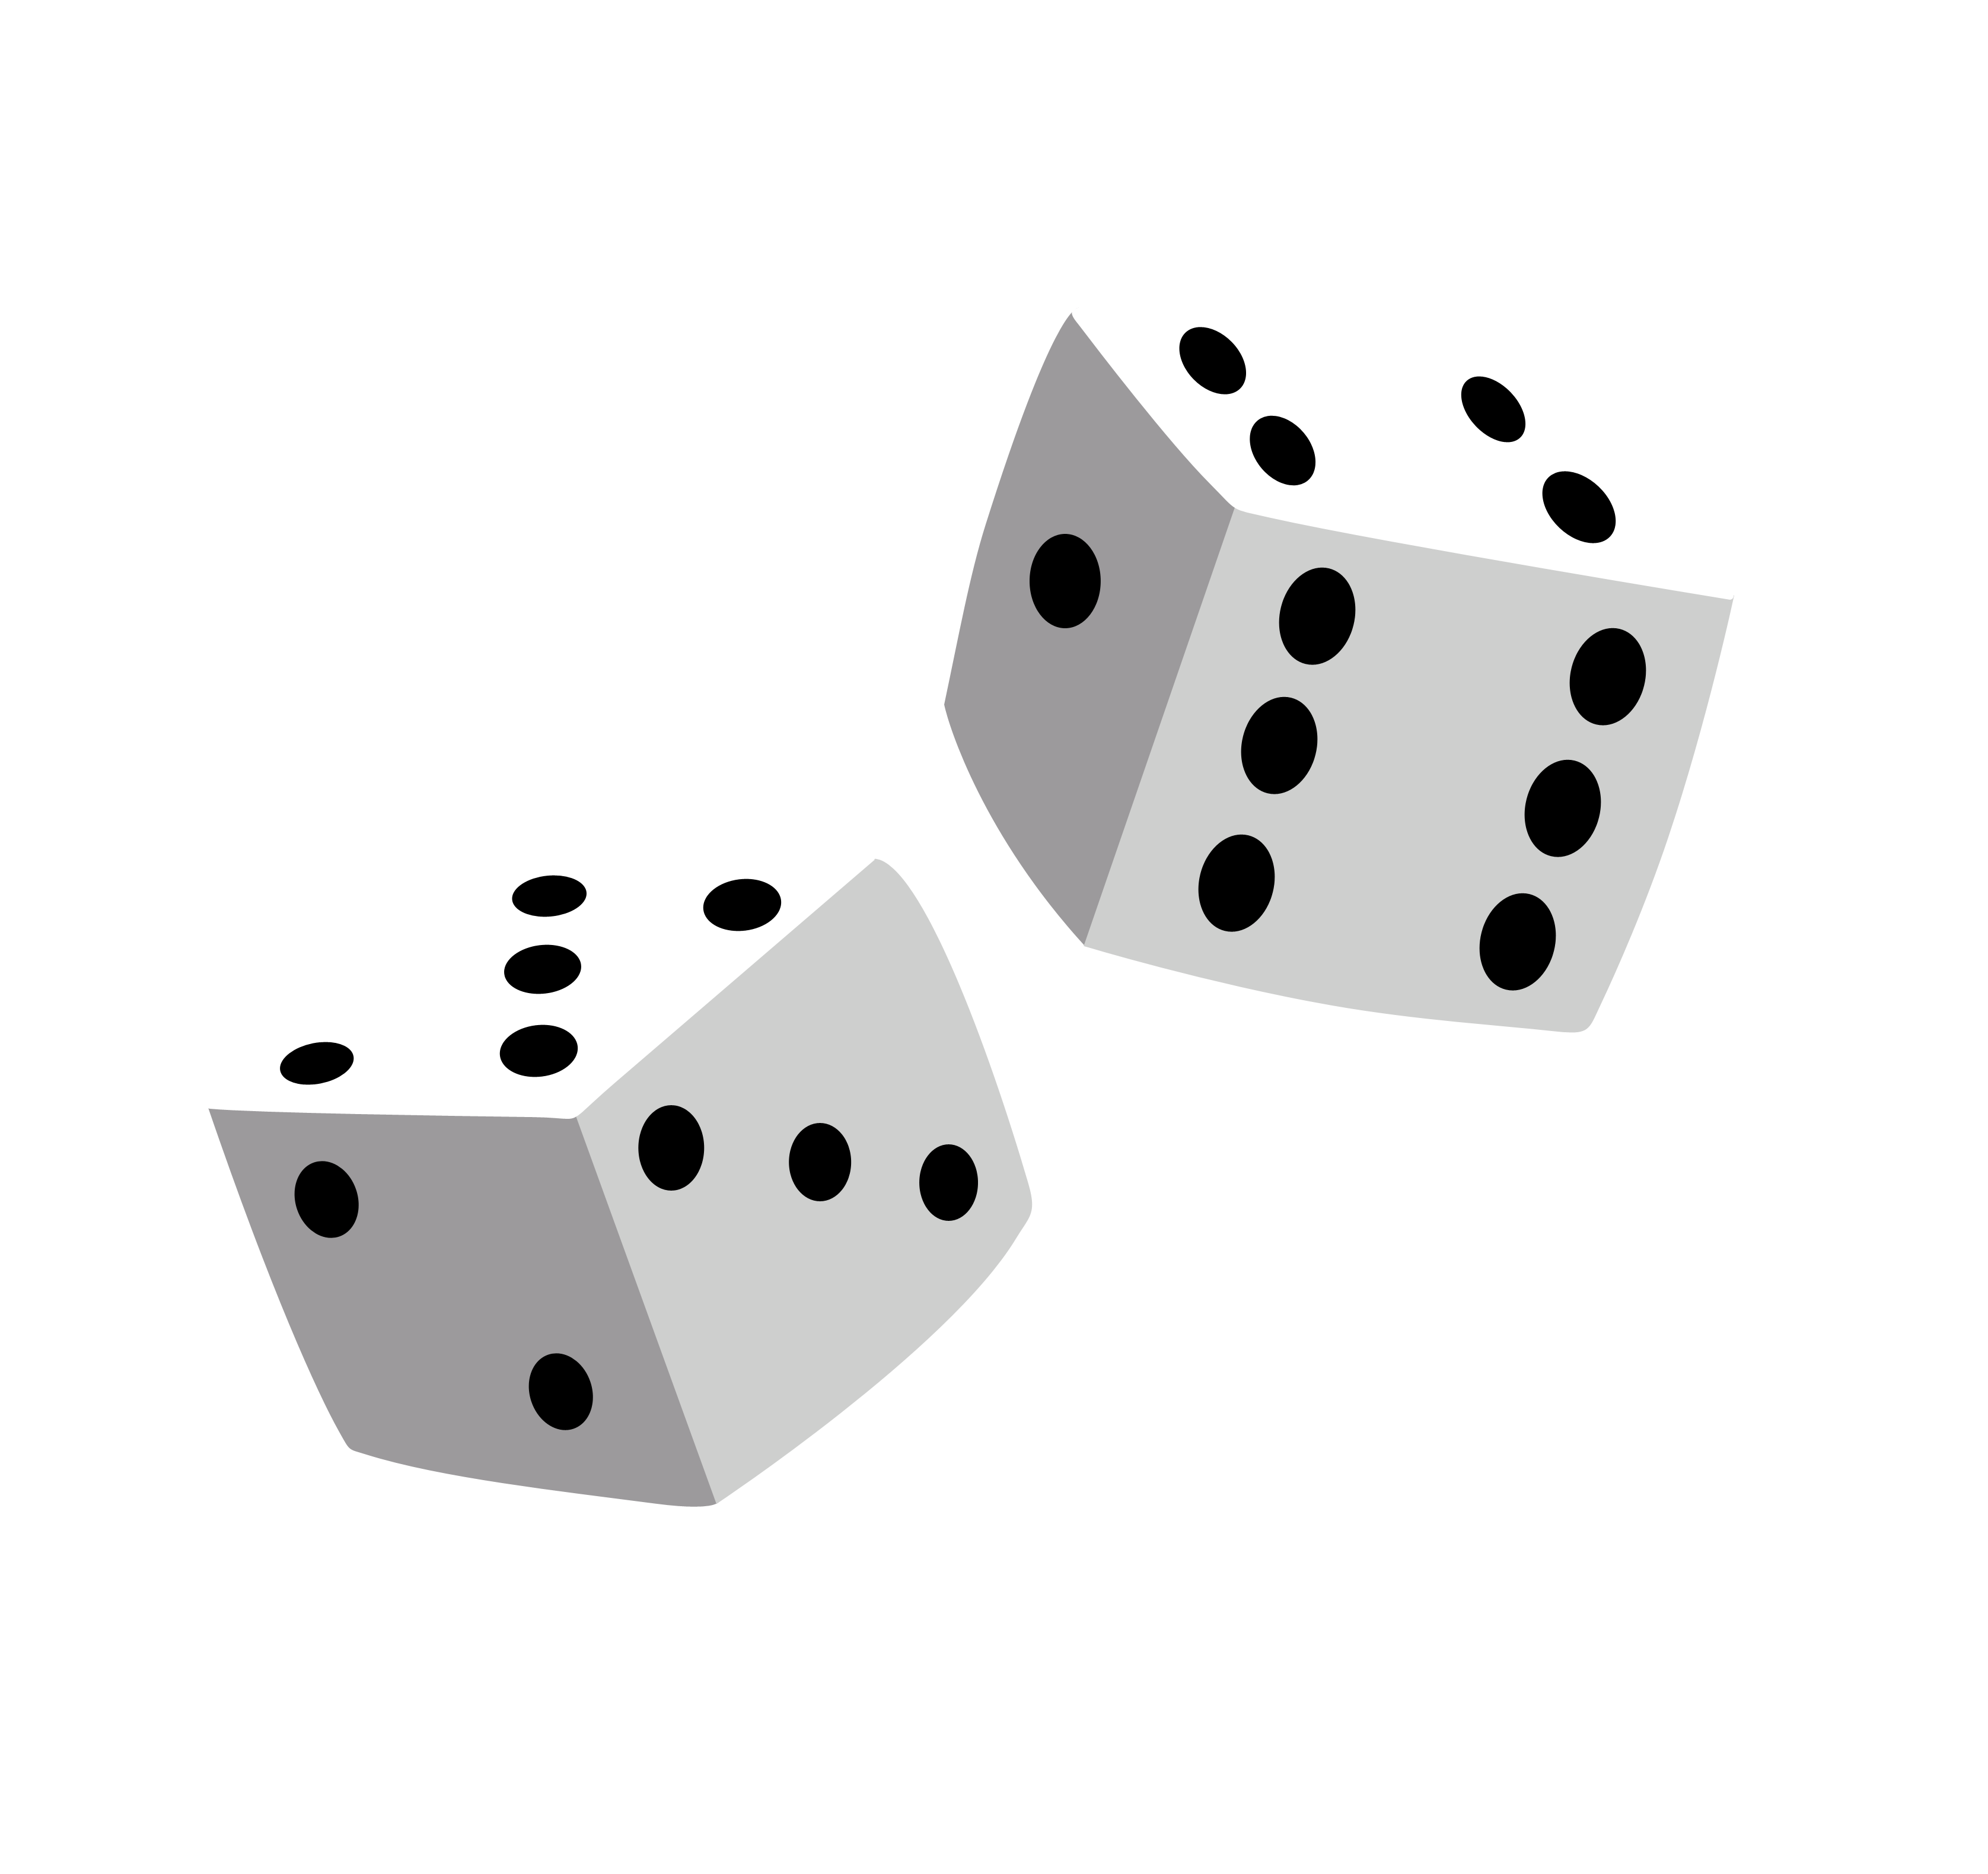 Dice Png Transparent Cutie Mark  Dice By Durpy image #41795